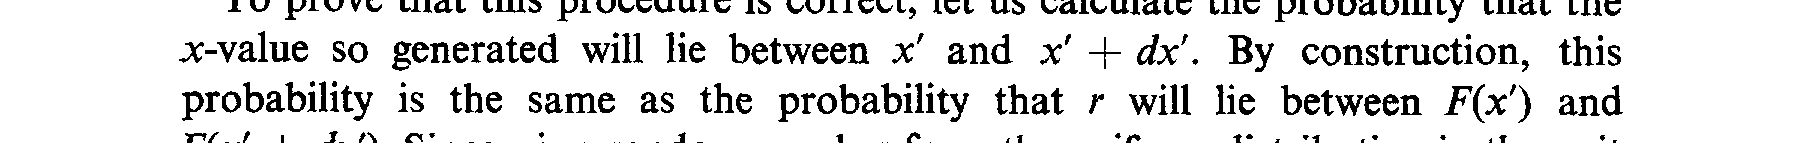 unit interval, and take for x that value which satisfies F(x) = r; in other words, take